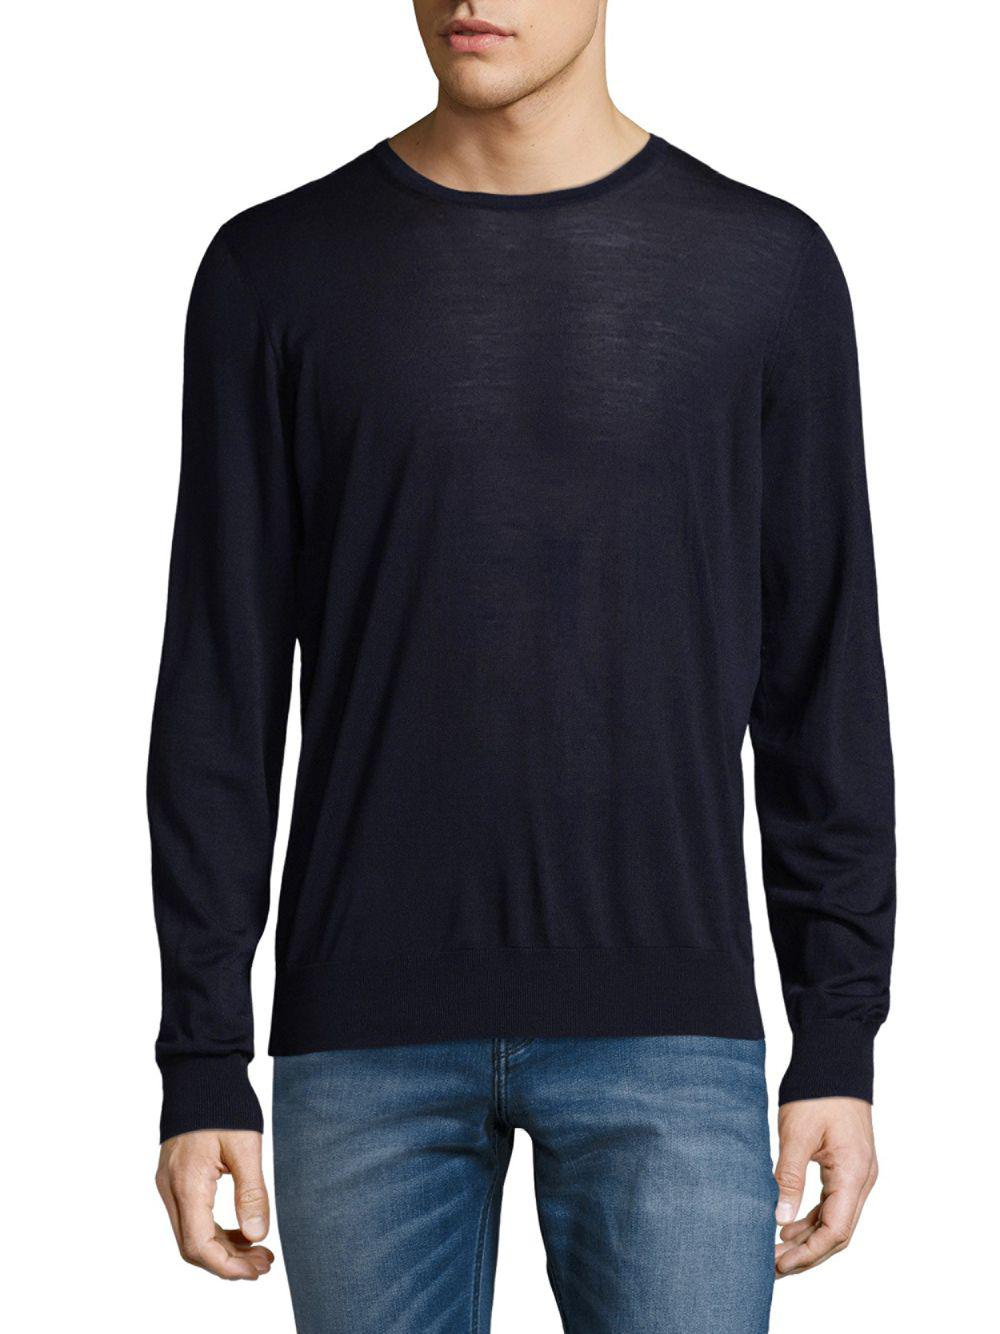 Outlet With Paypal Order Armani Crew neck wool sweater Best Seller sH3lNcXsv0